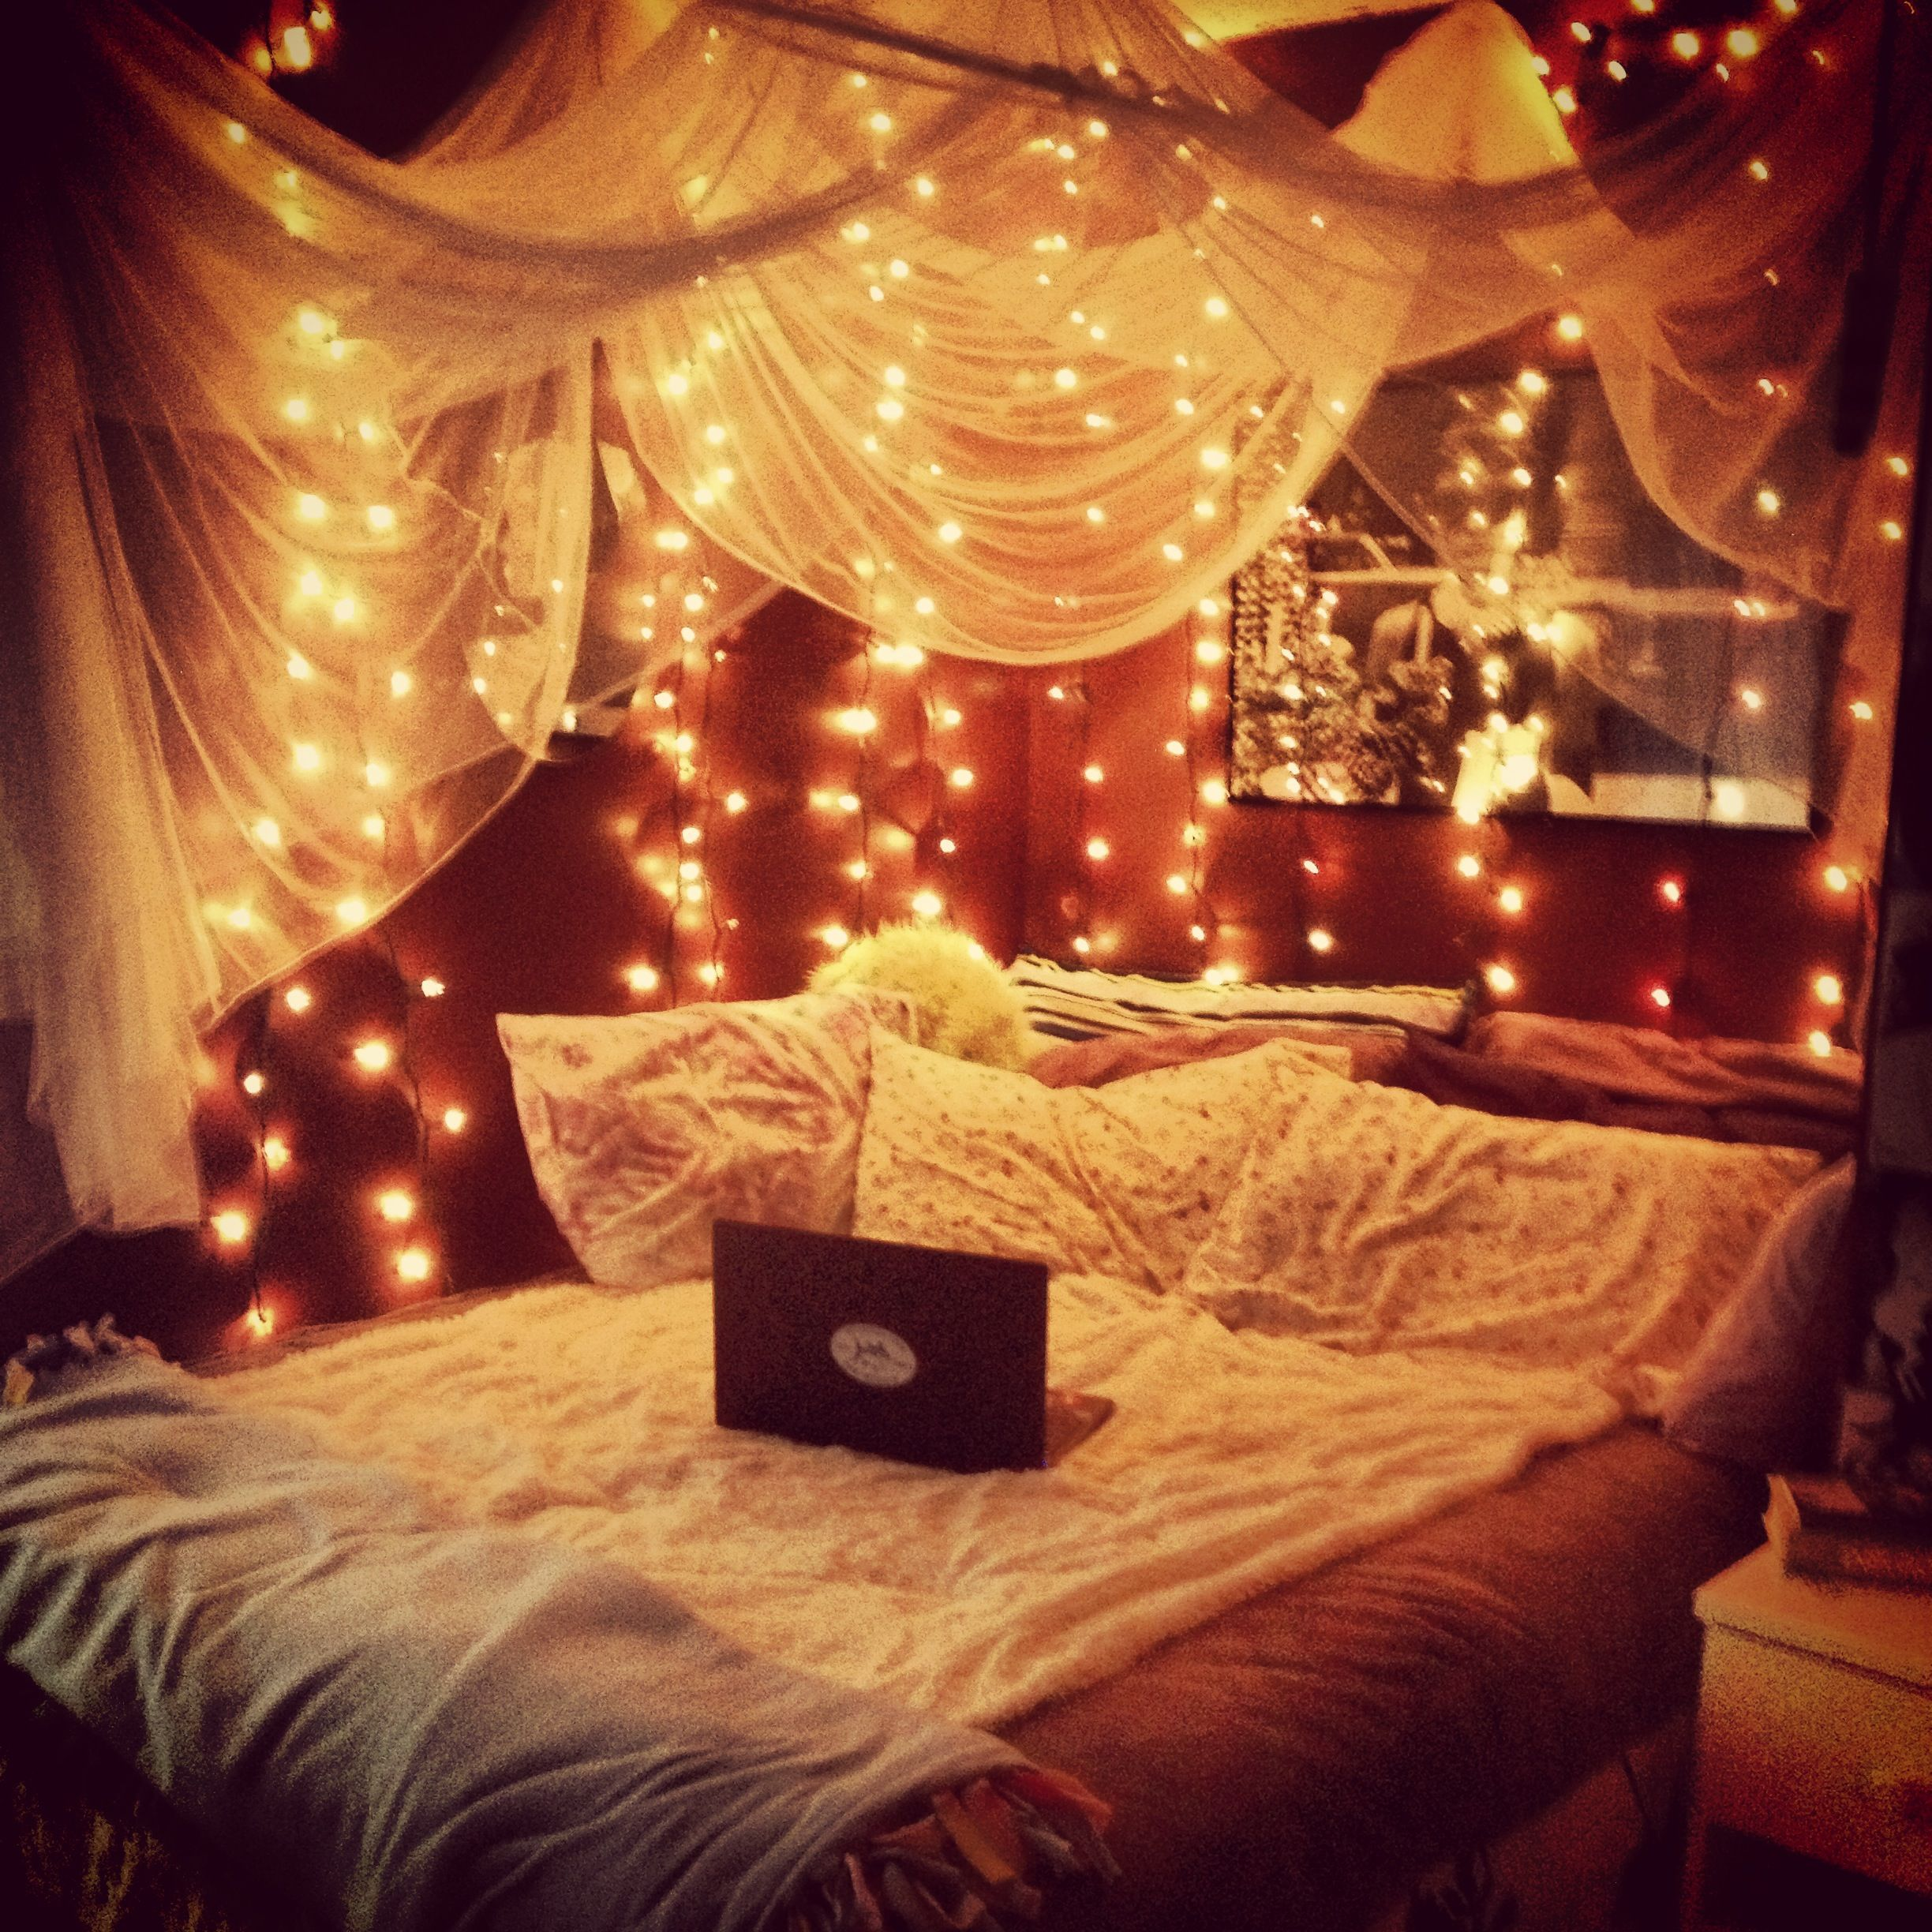 Cosy bedroom fairy lights -  Uooncampus Uocontest